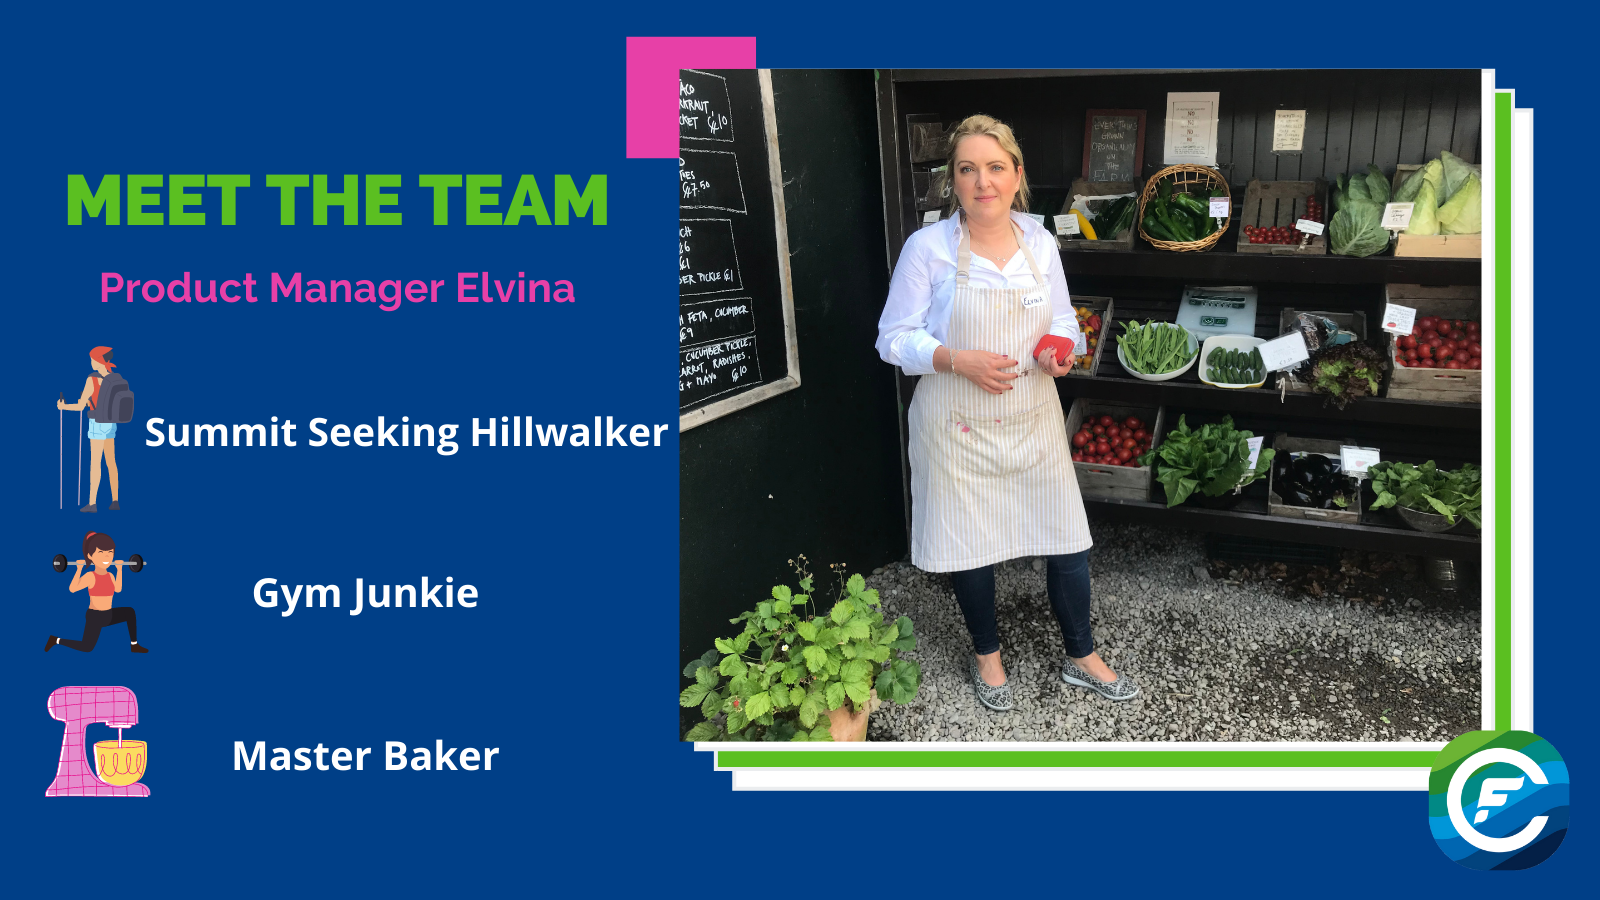 Elvina Kenny Project Manager